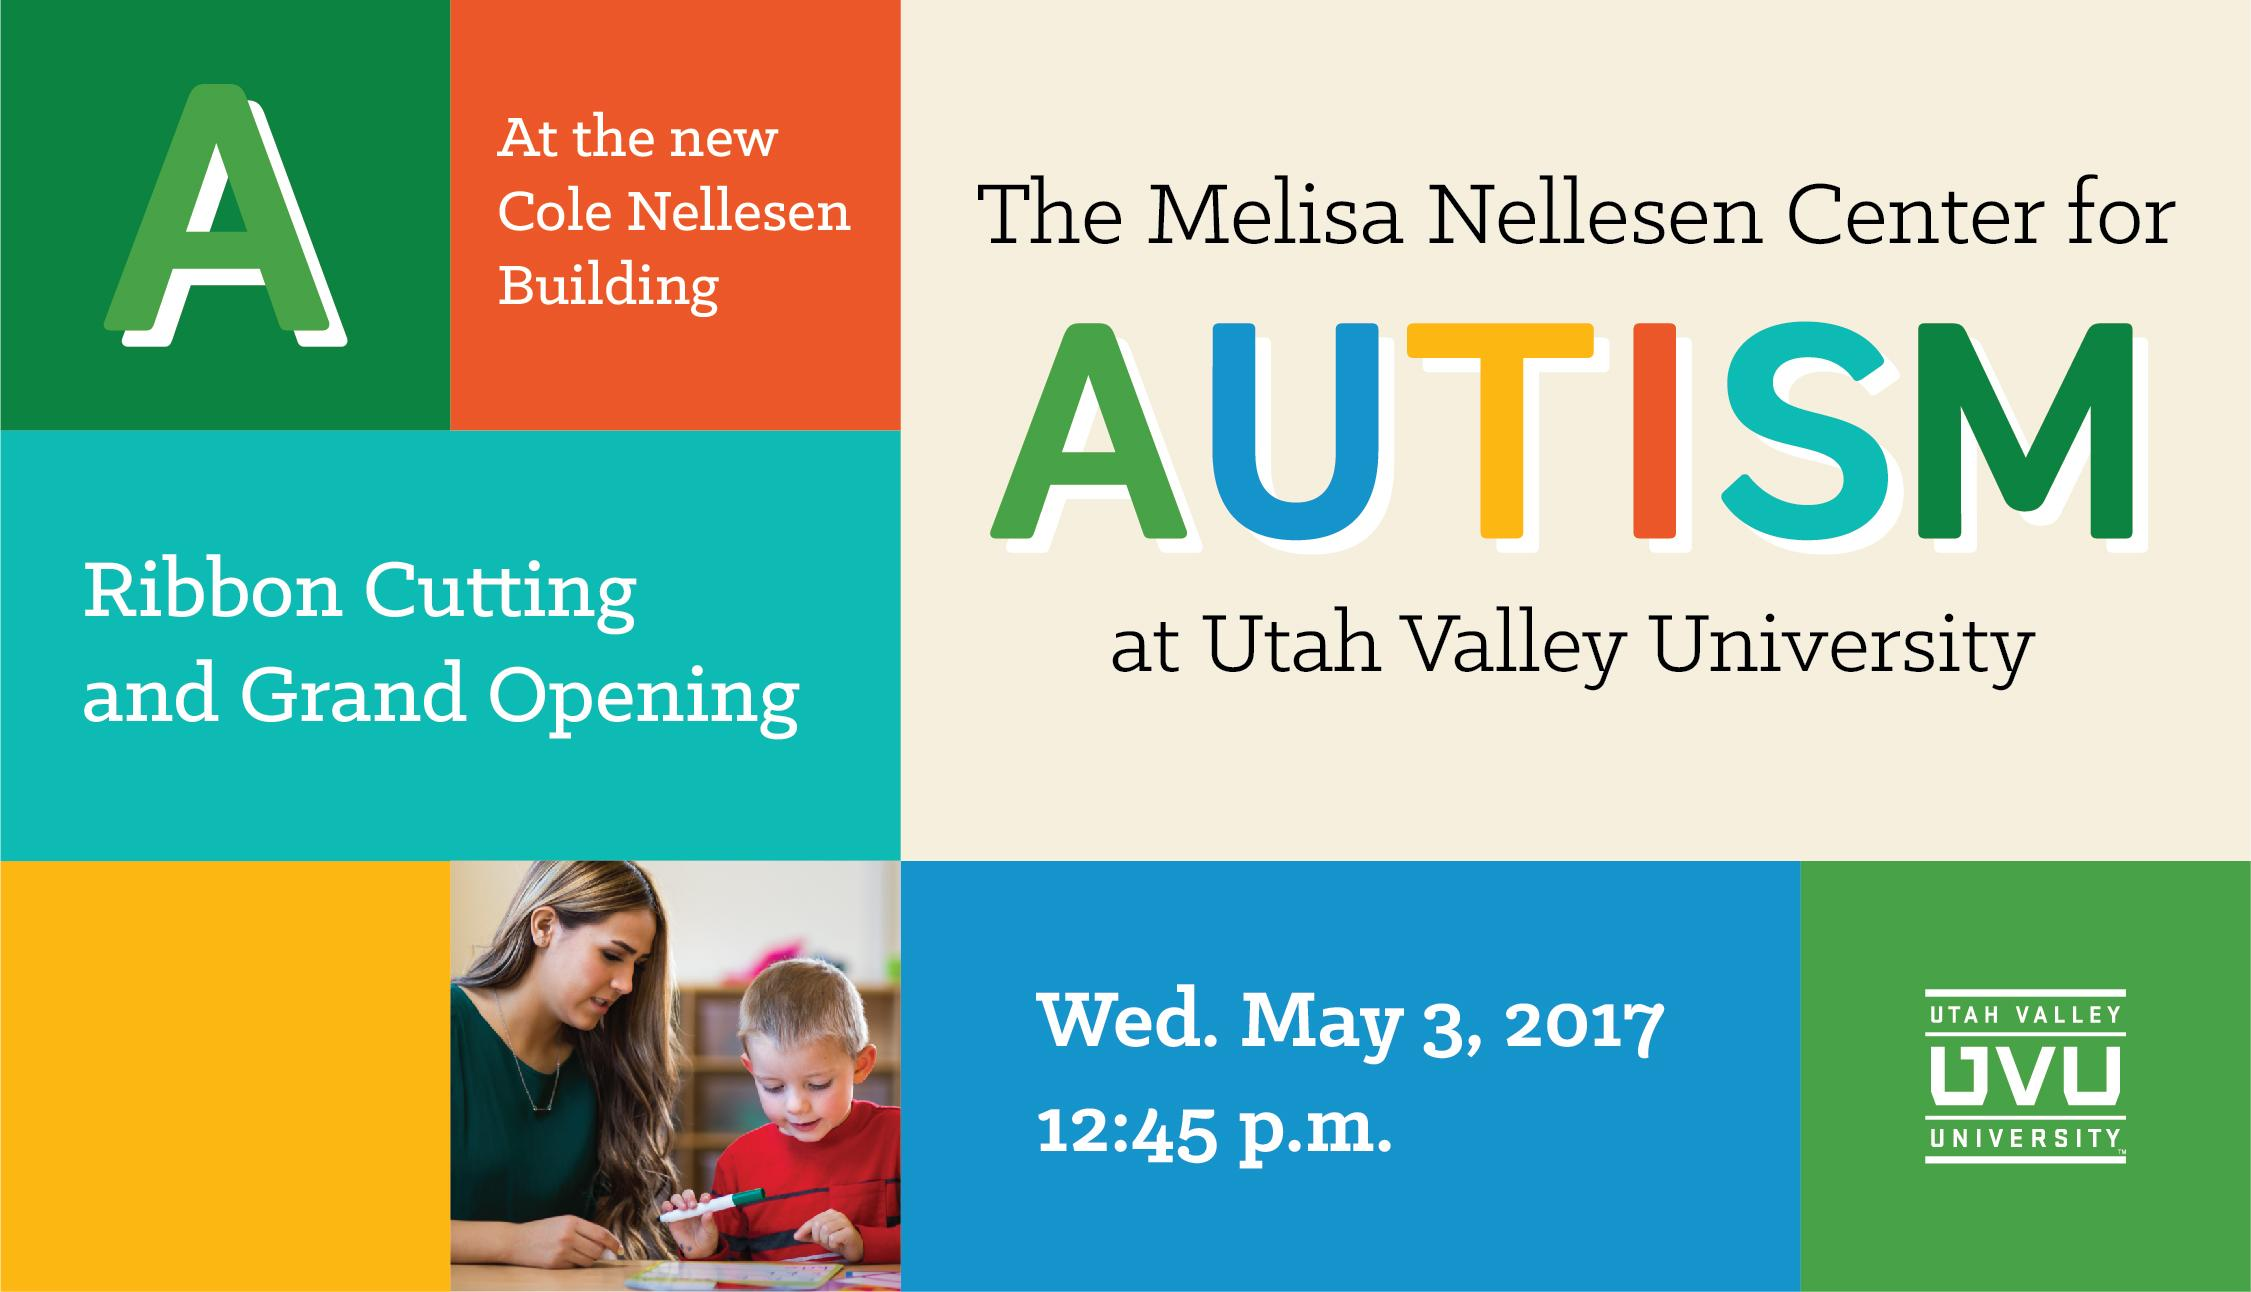 Utah Valley University will hold a ribbon cutting and grand opening for the new Cole Nellesen Building, which will house the Melisa Nellesen Center for Autism, on Wednesday, May 3 at 12:45 p.m.